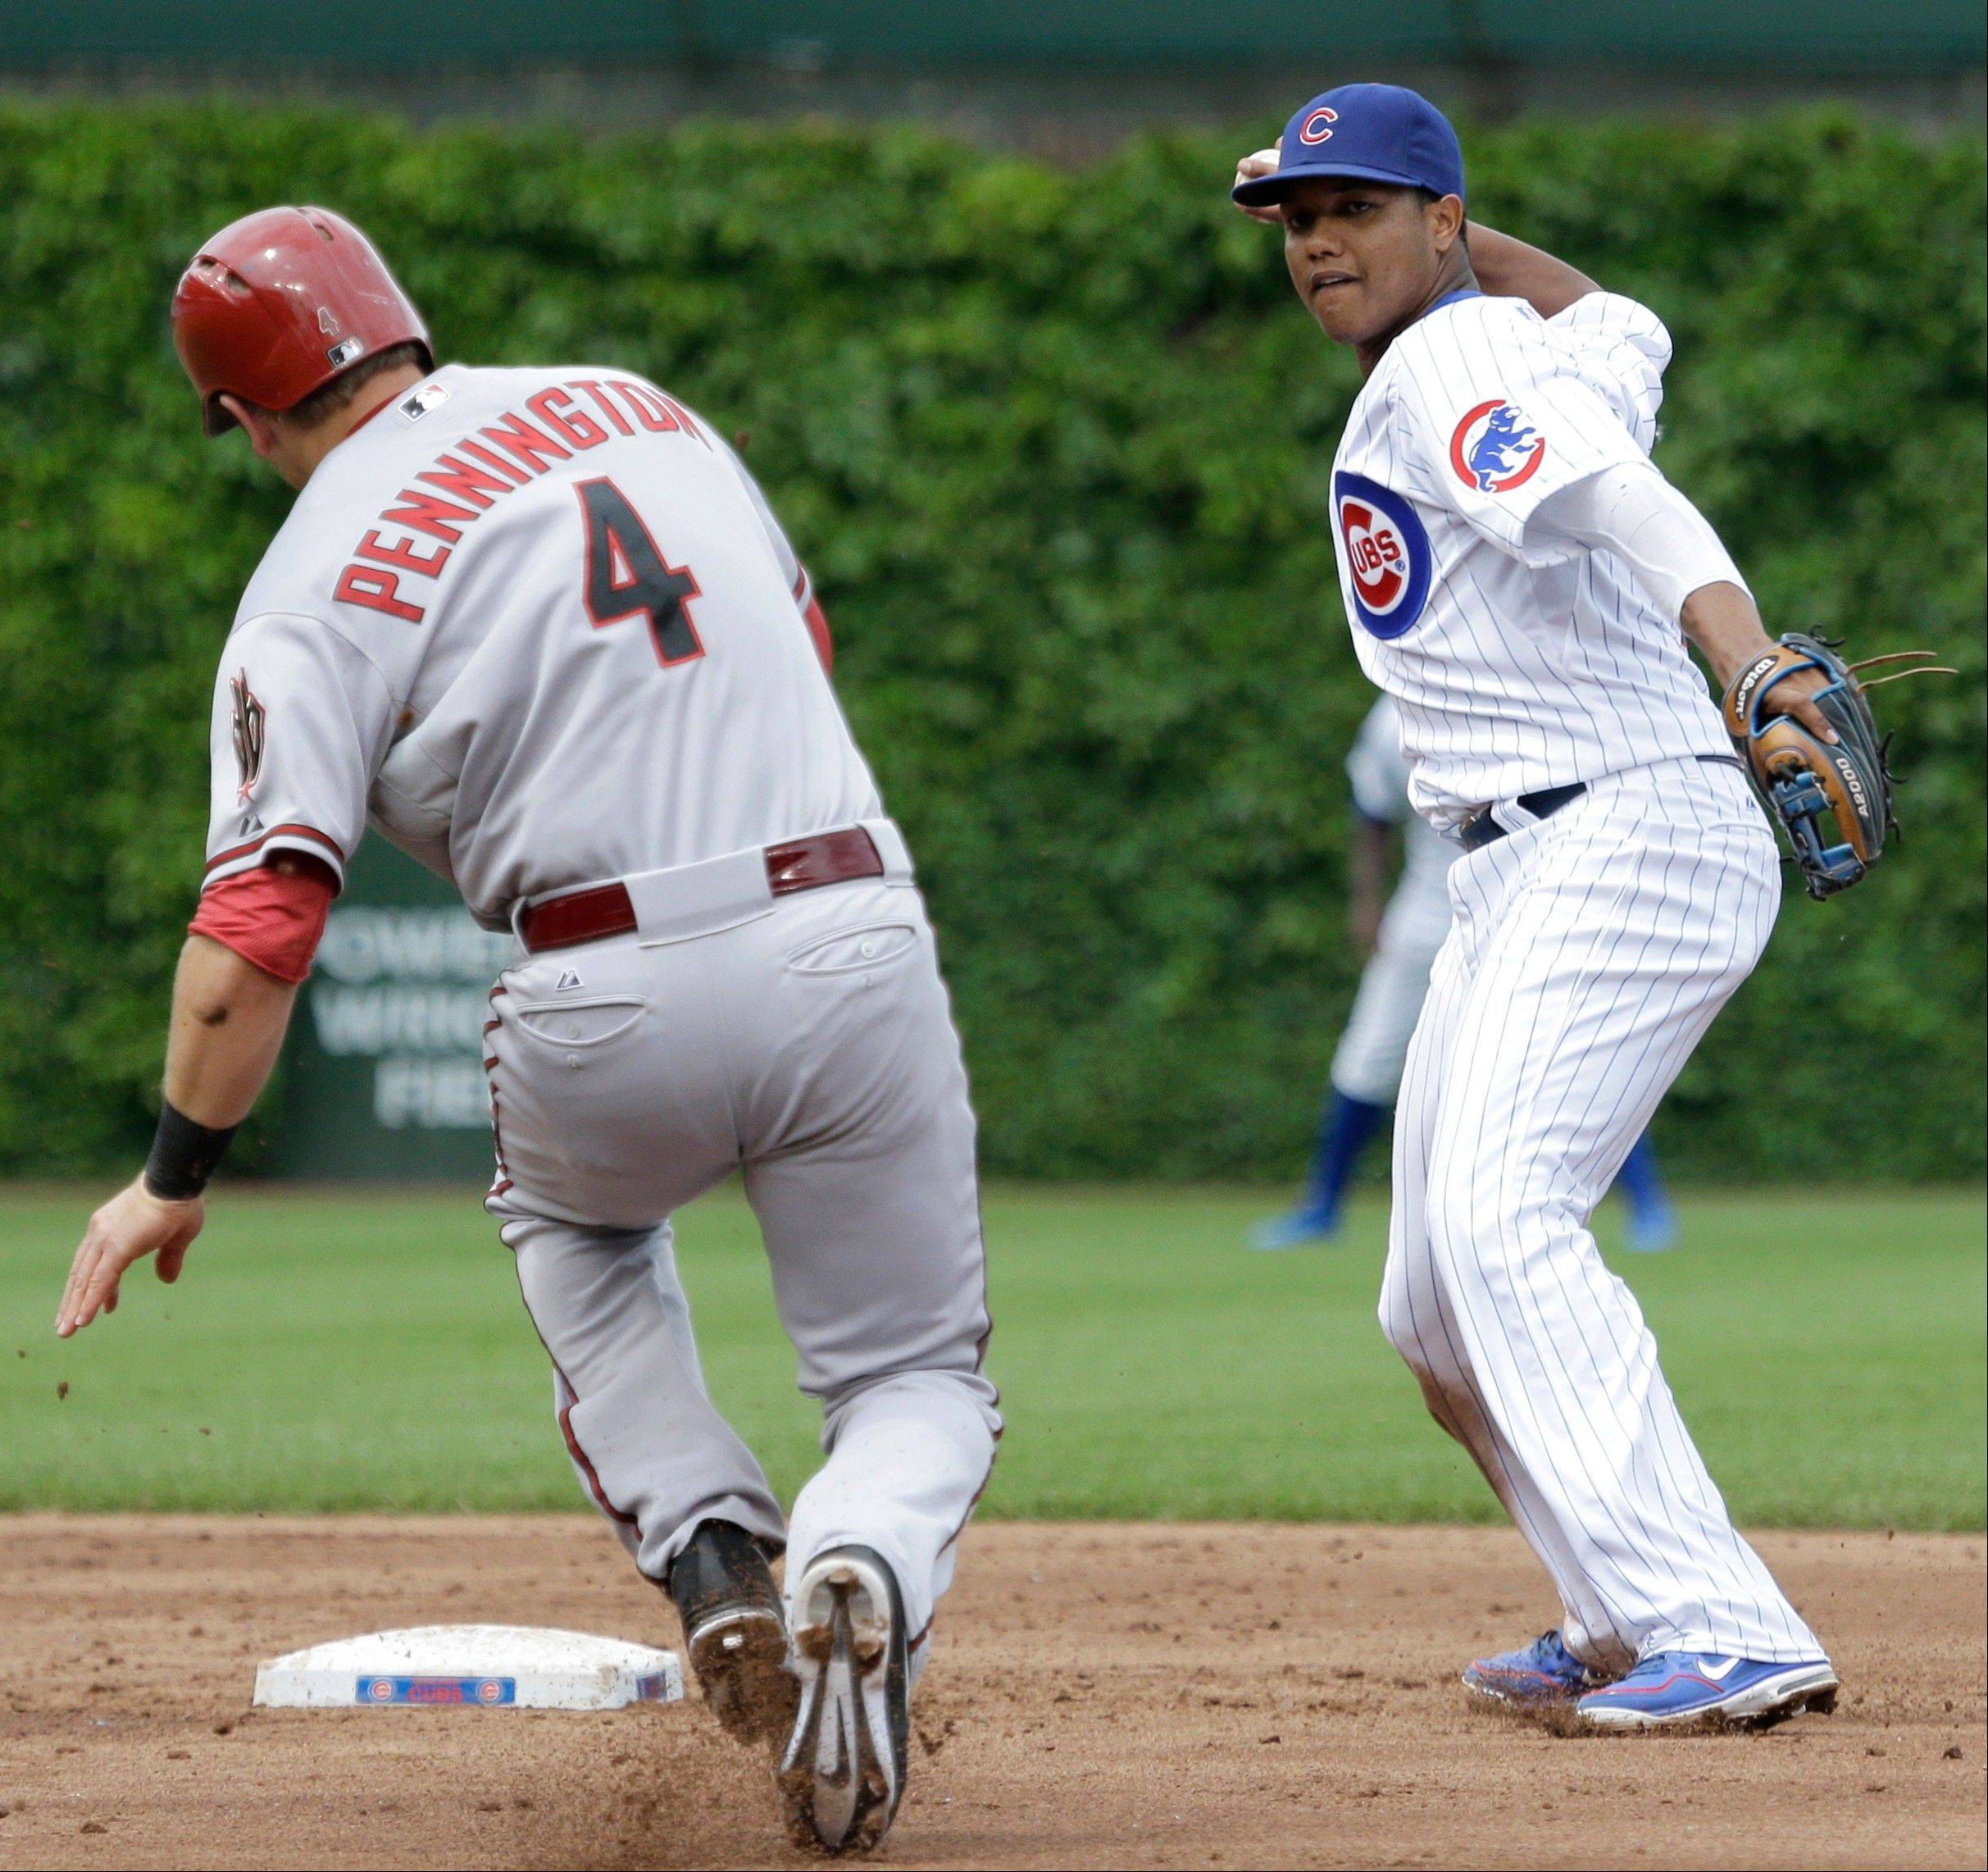 Chicago Cubs shortstop Starlin Castro, right, throws to first after forcing out Arizona Diamondbacks' Cliff Pennington during the third inning of a baseball game, Friday, May 31, 2013, in Chicago. Wade Miley was out at first.